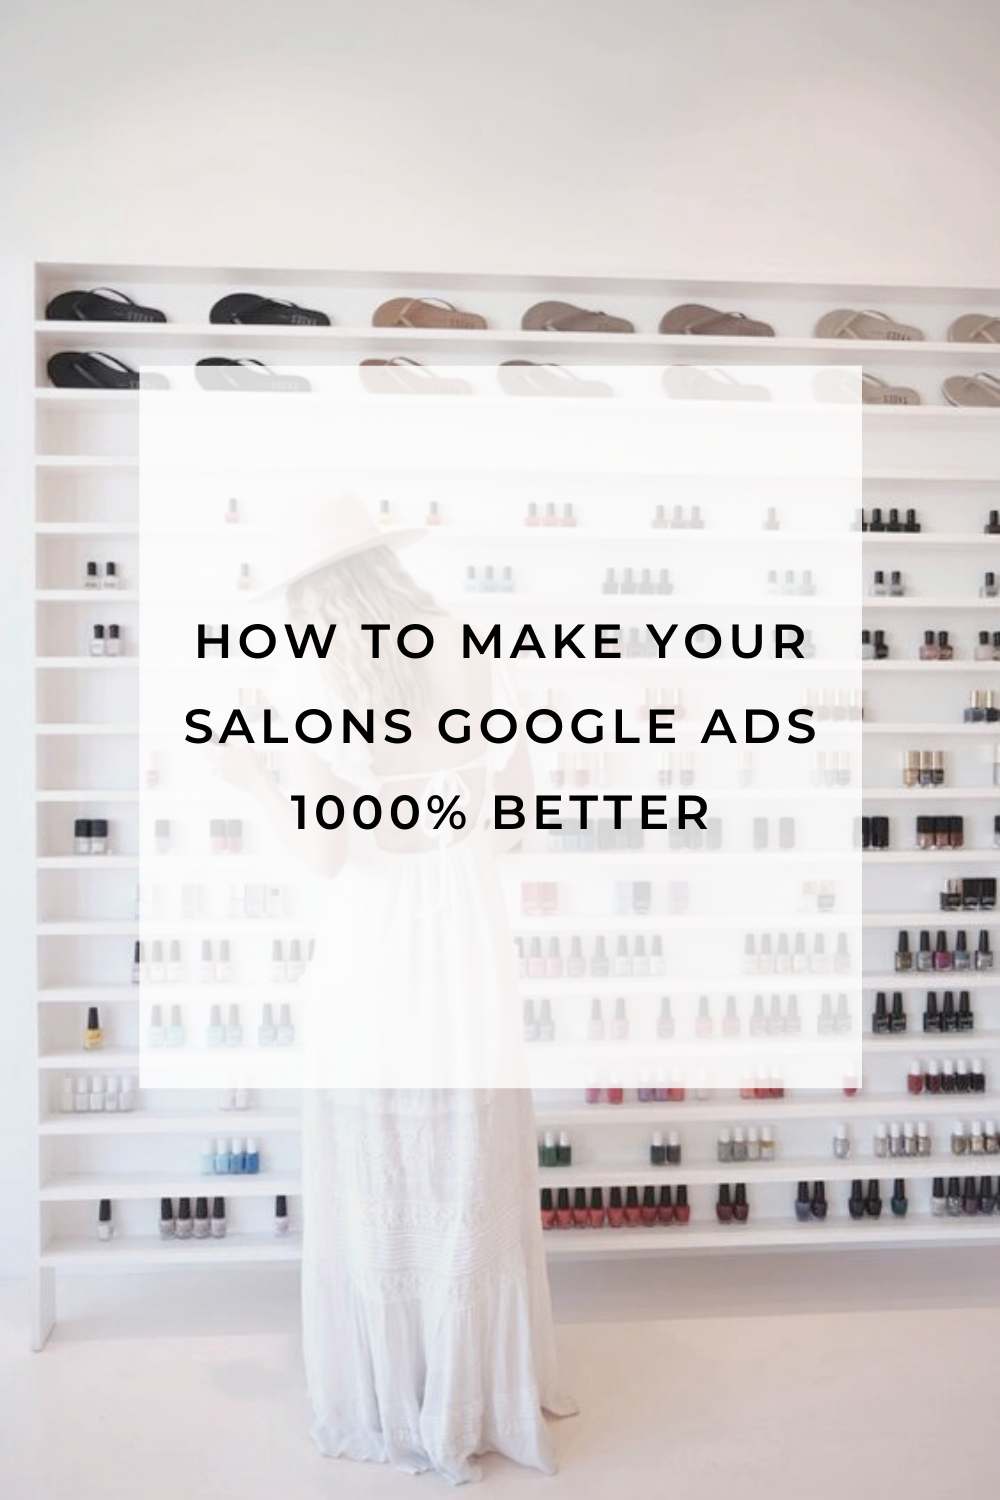 If your salon does Google ads, this will make them 1000